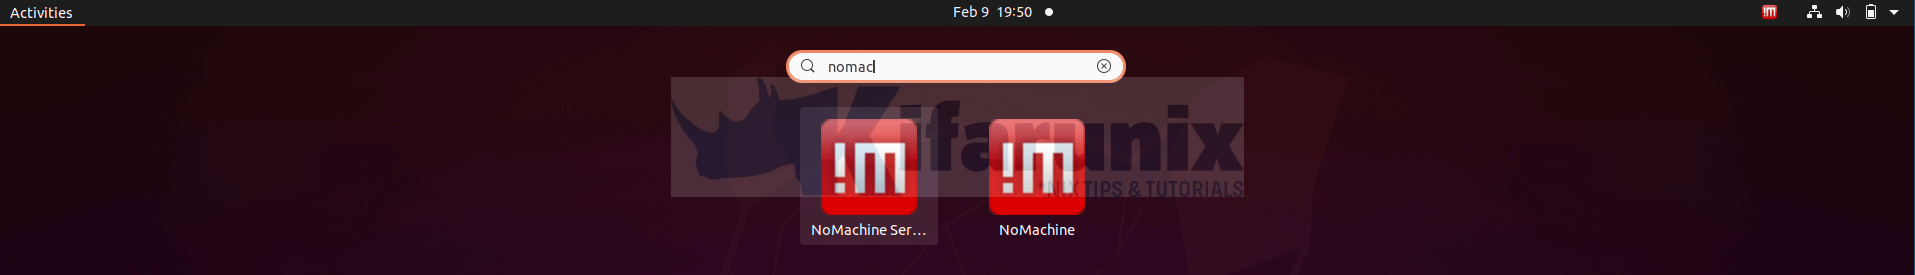 Install NoMachine on Ubuntu 20.04